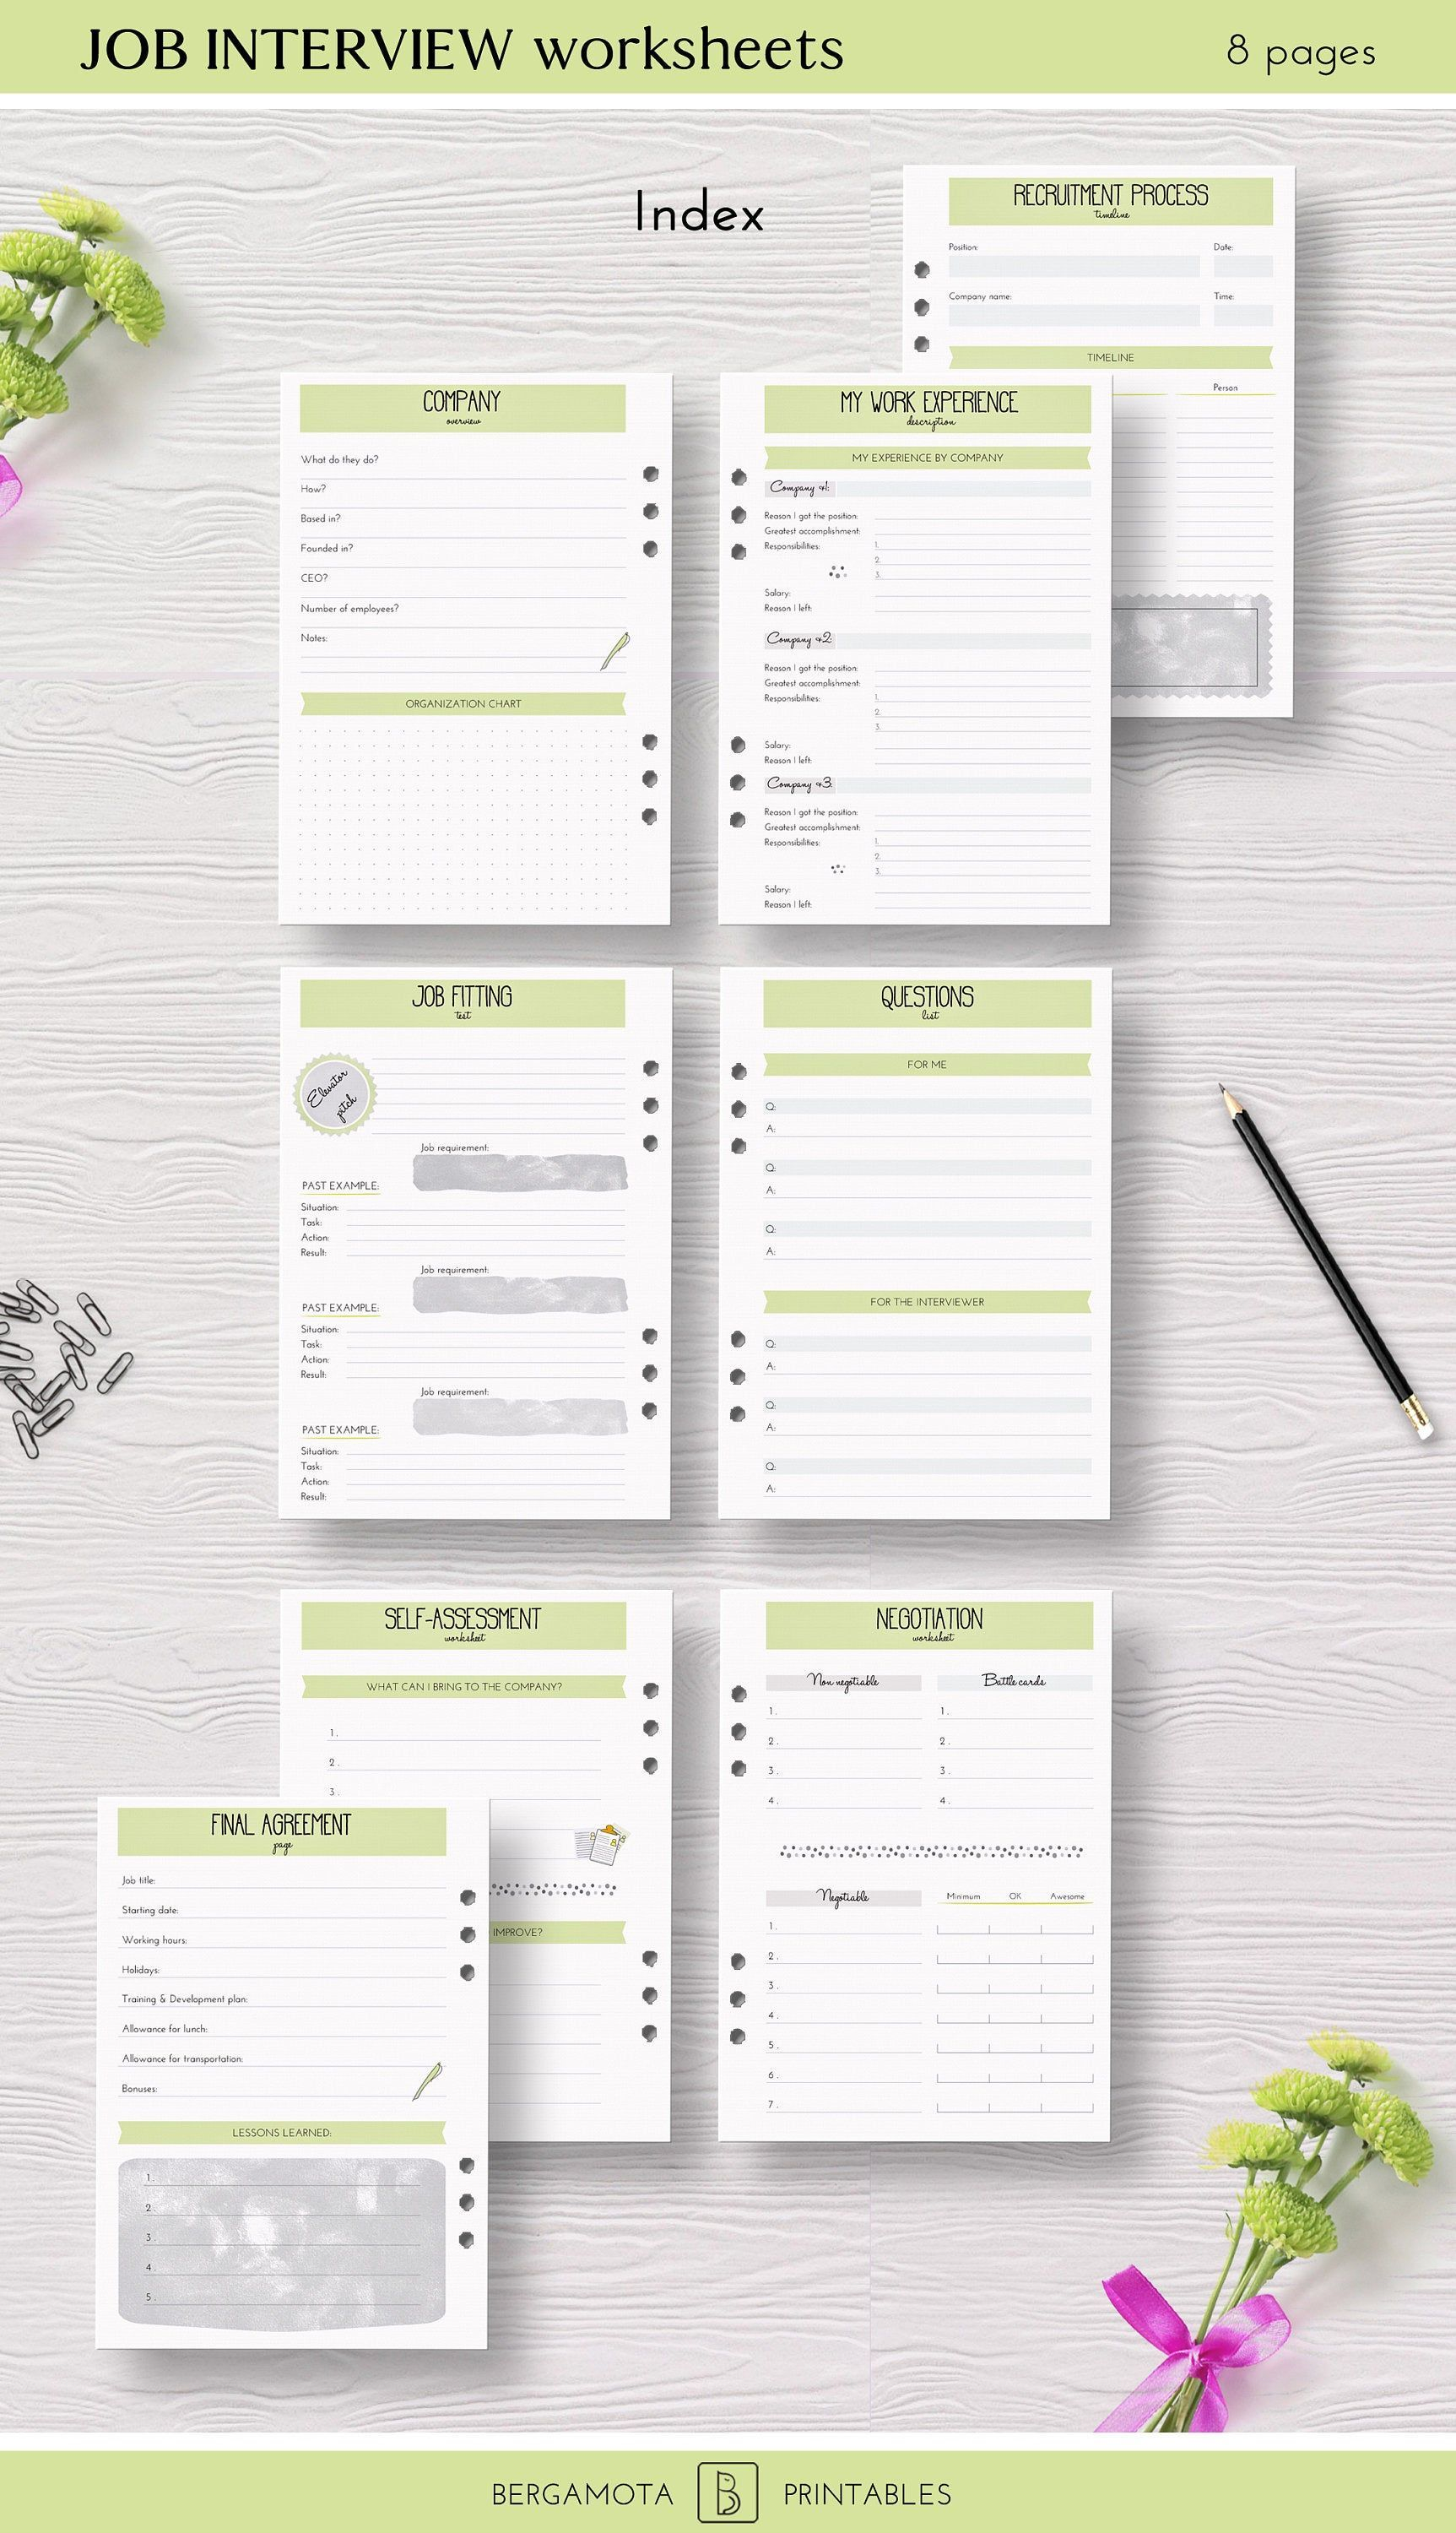 Job Interview Worksheets A 8 Printable Planner Pages A